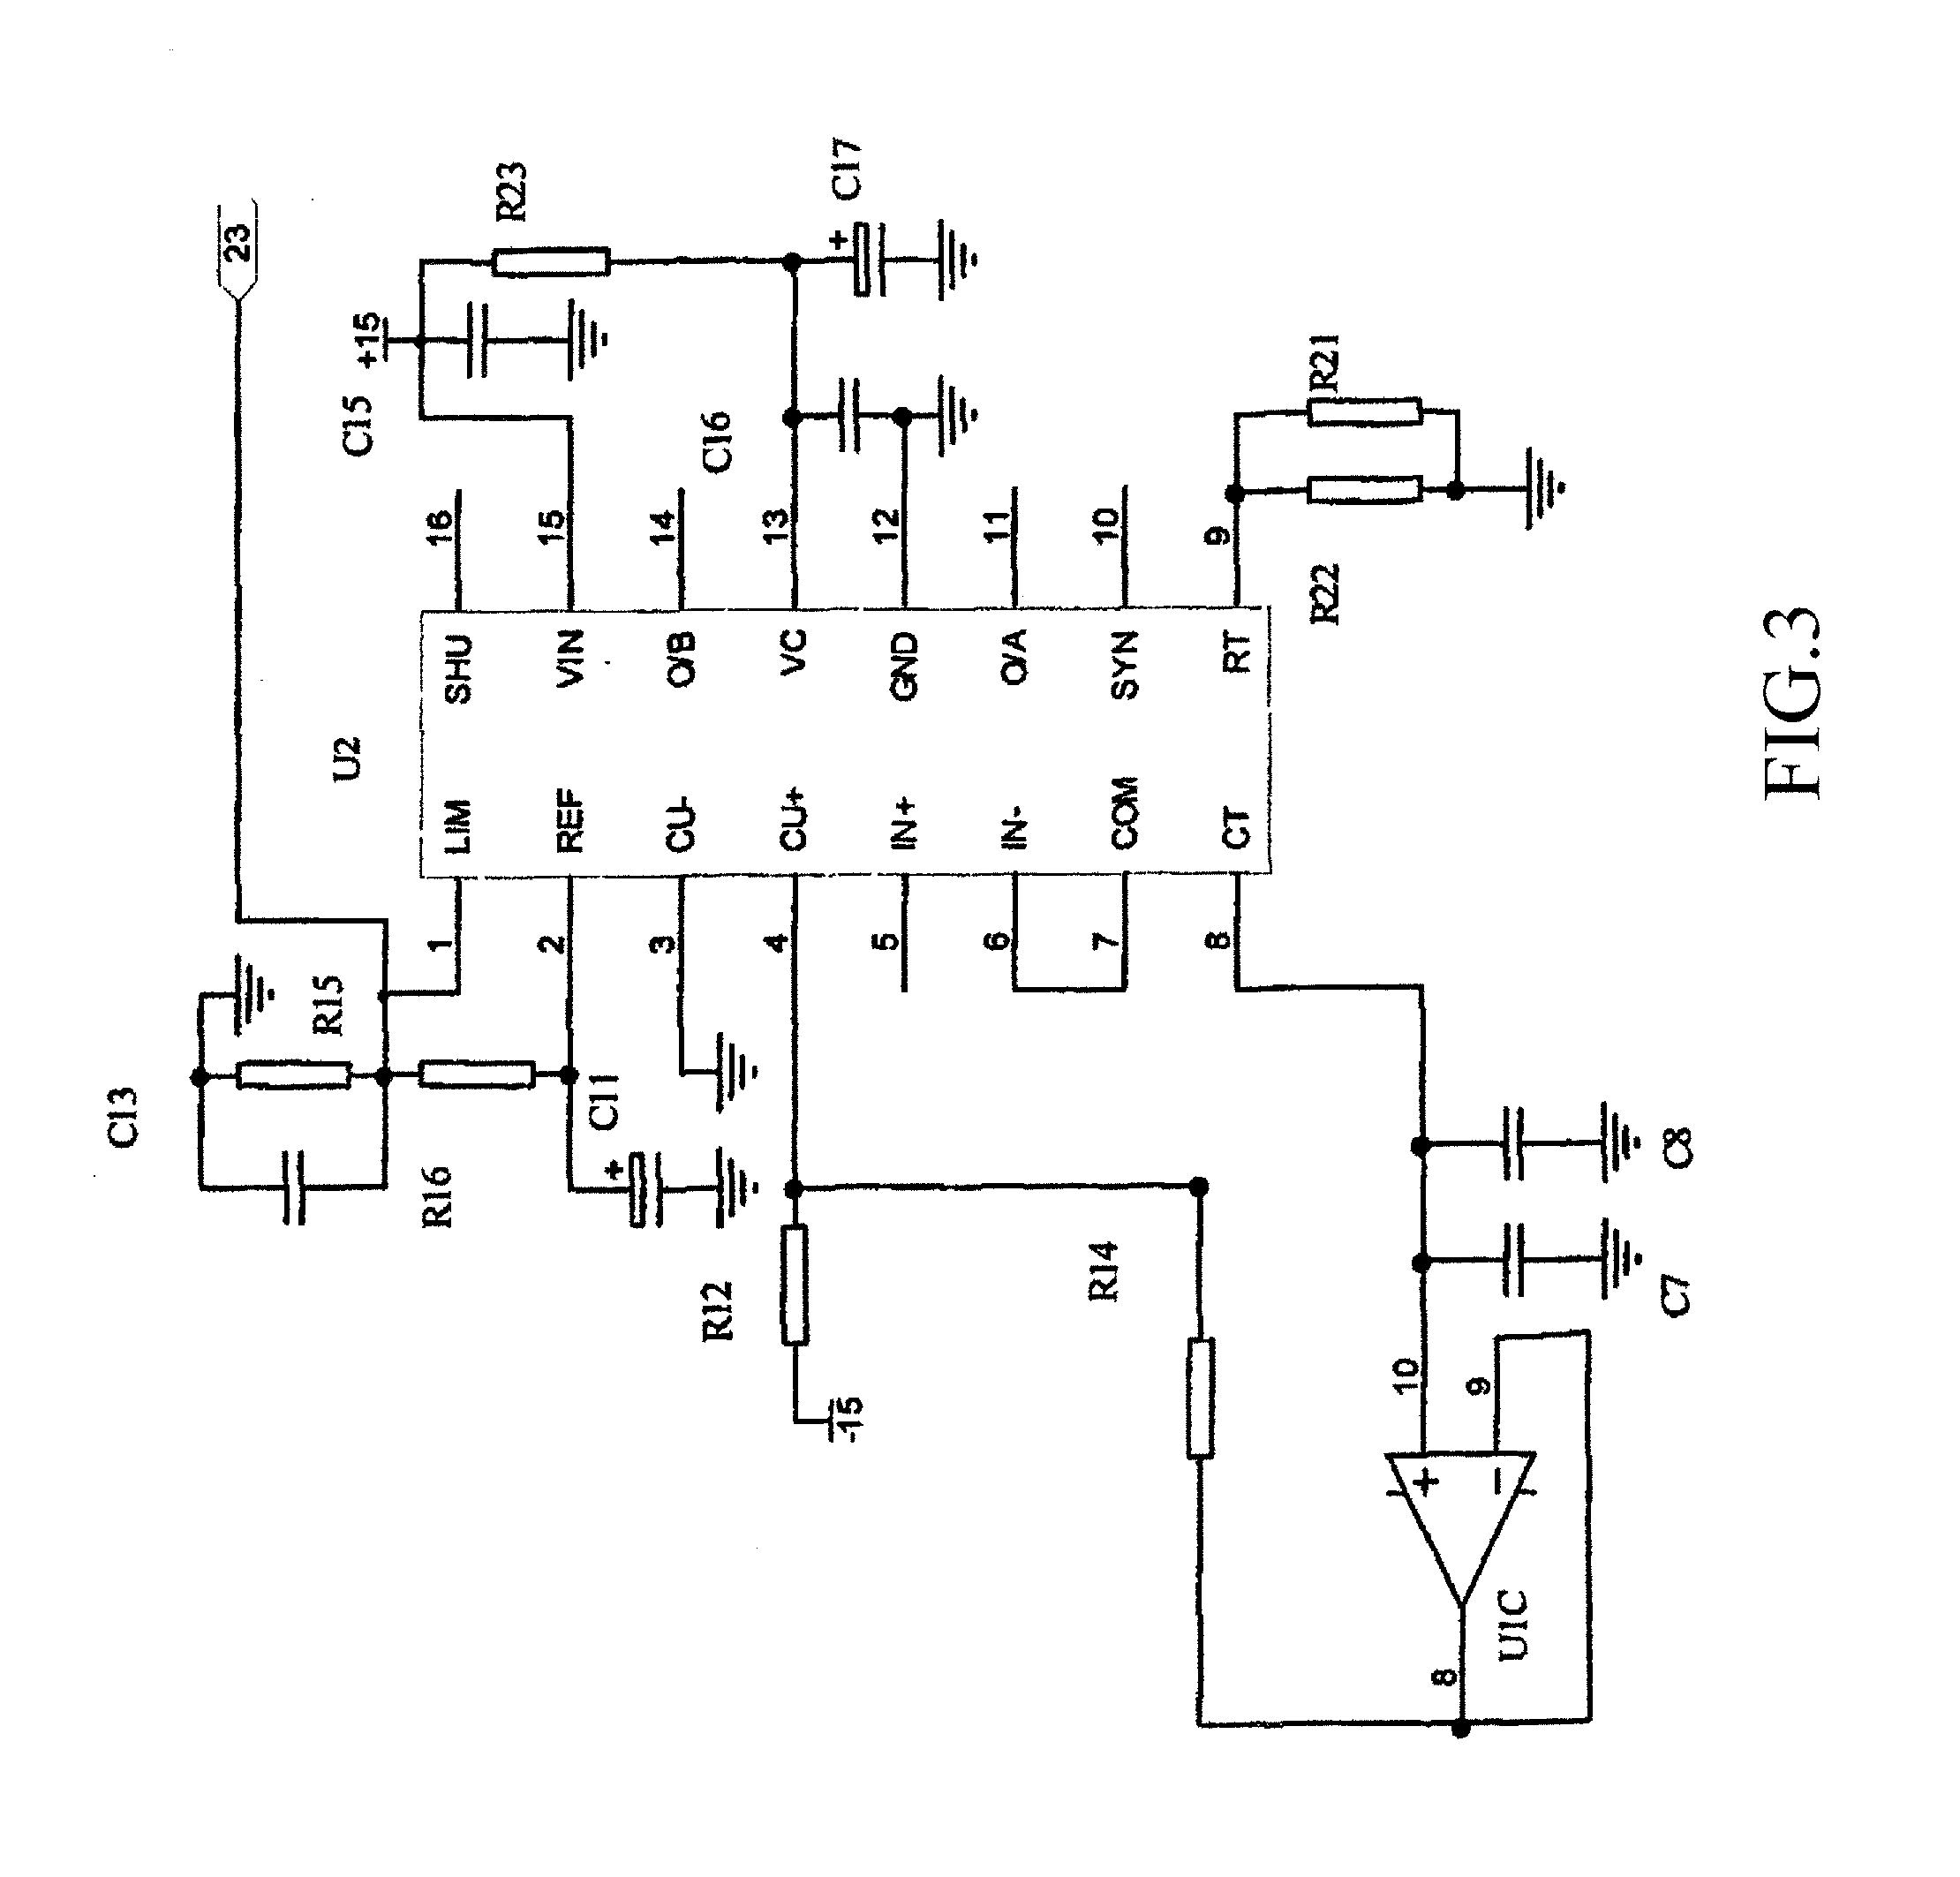 Igbt Inverter Circuit Diagram Free Wiring For You Induction Heating Iii With G1 G2 25 Images Welding Schematic